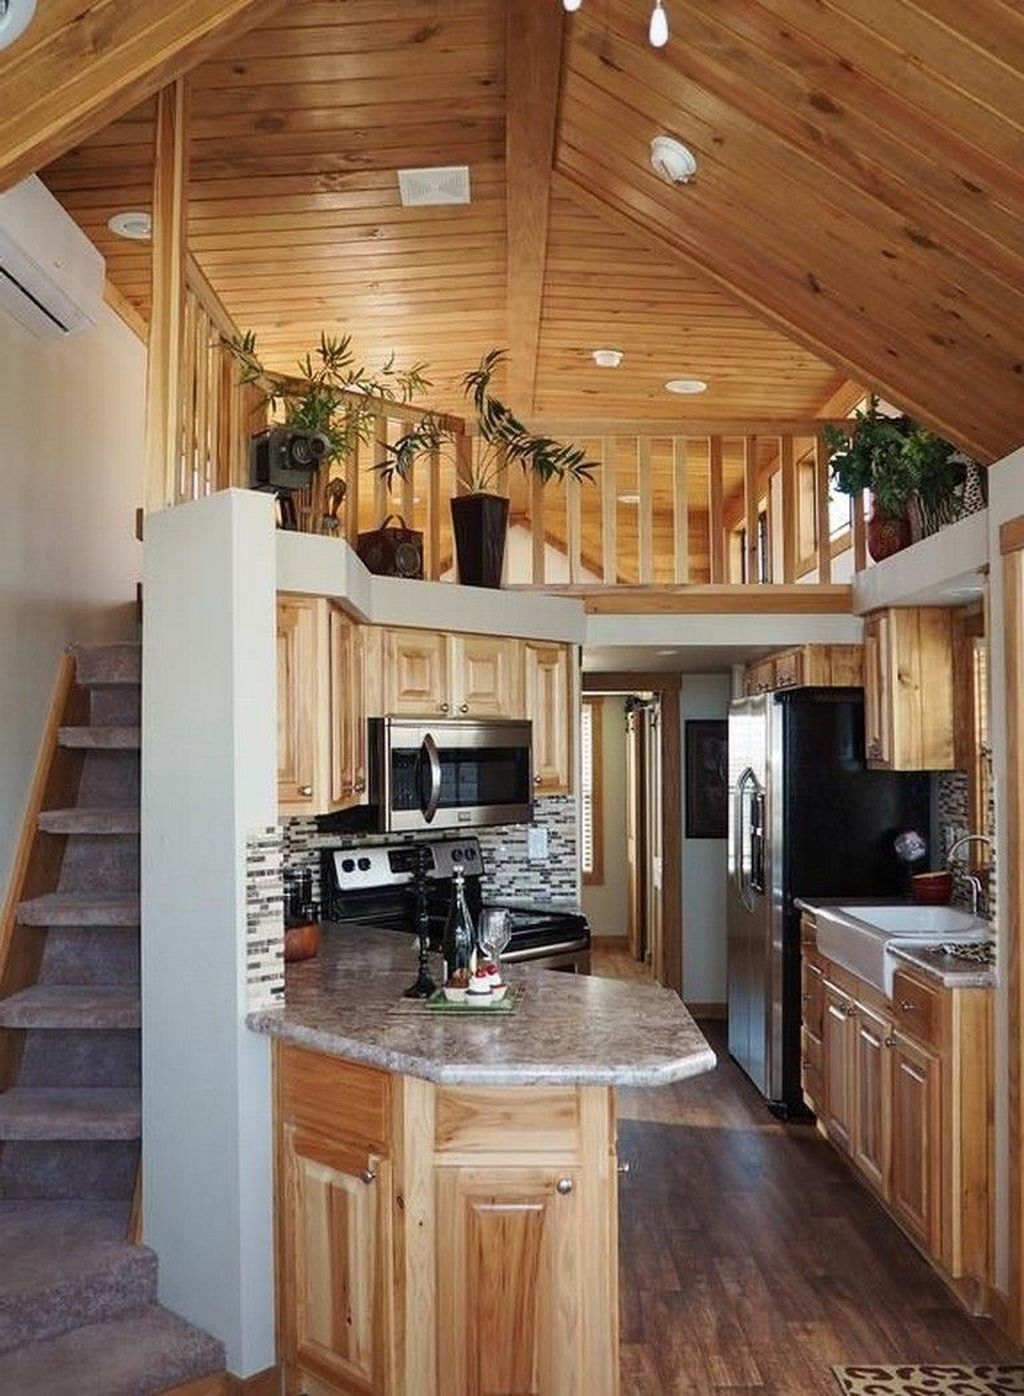 34 Fabulous Tiny House Design Ideas You Never Seen Before Small House Kitchen Design Small House Interior Tiny House Interior Design